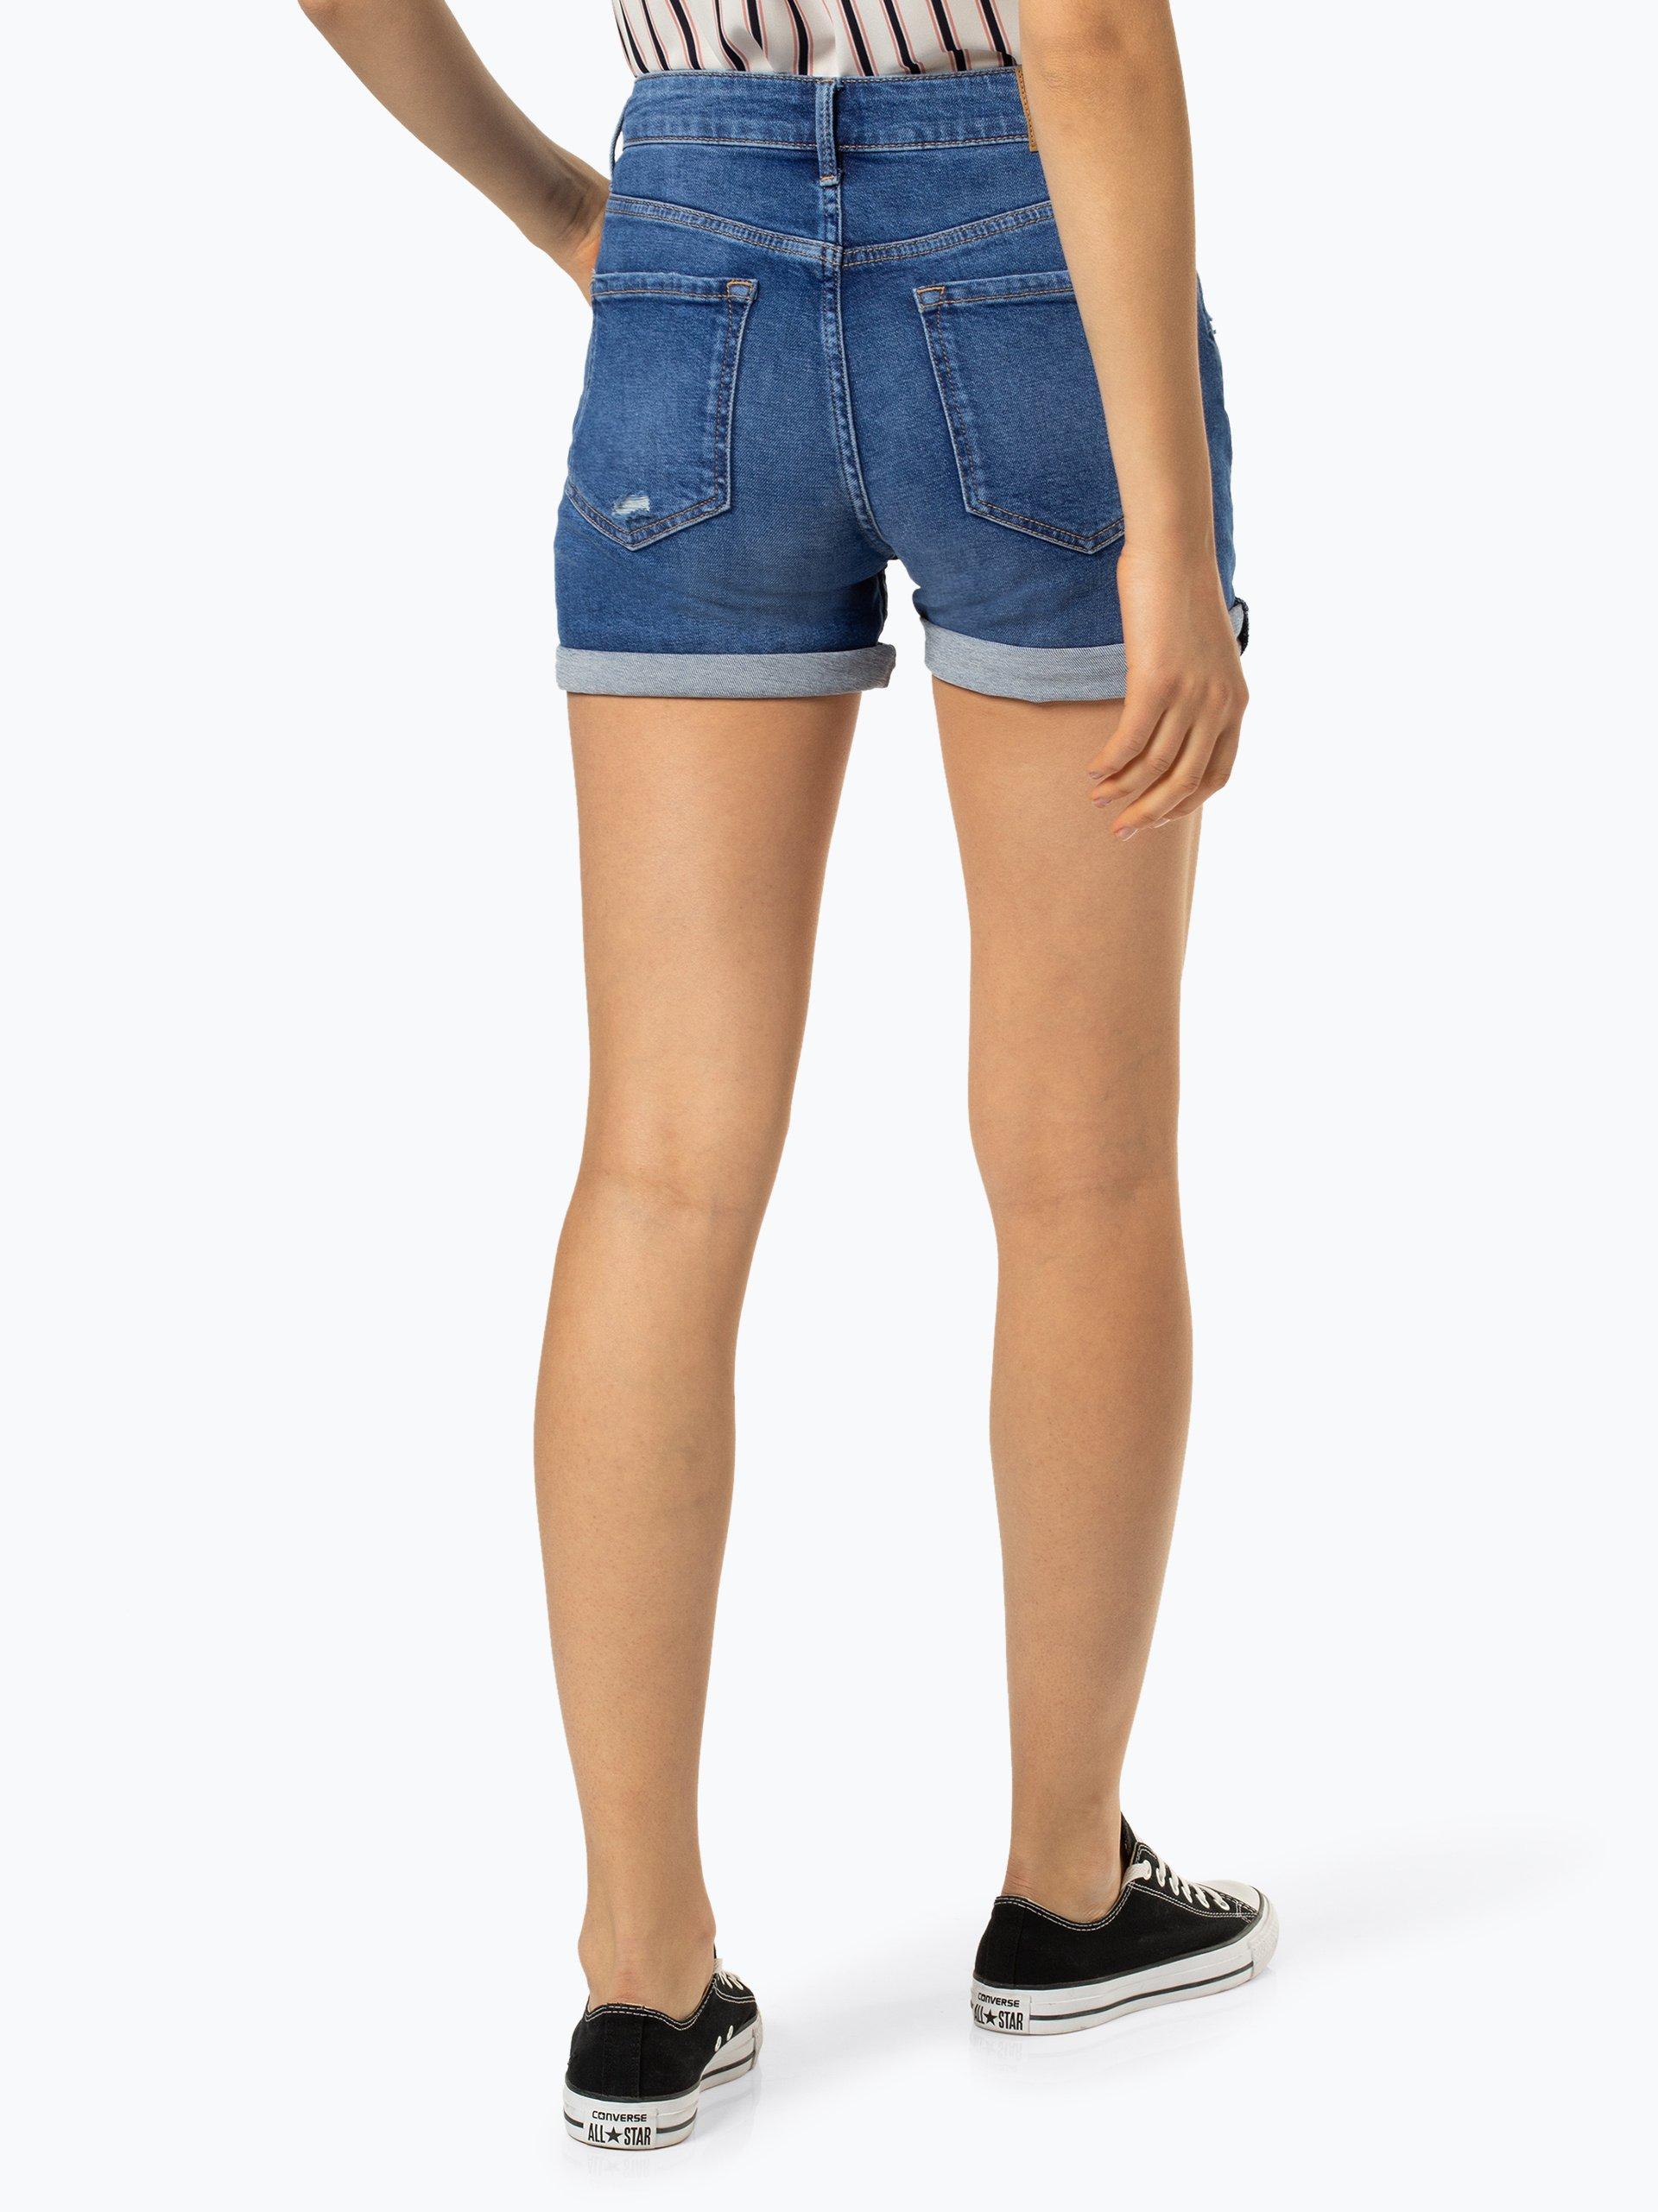 Pepe Jeans Damen Jeansshorts - Mary